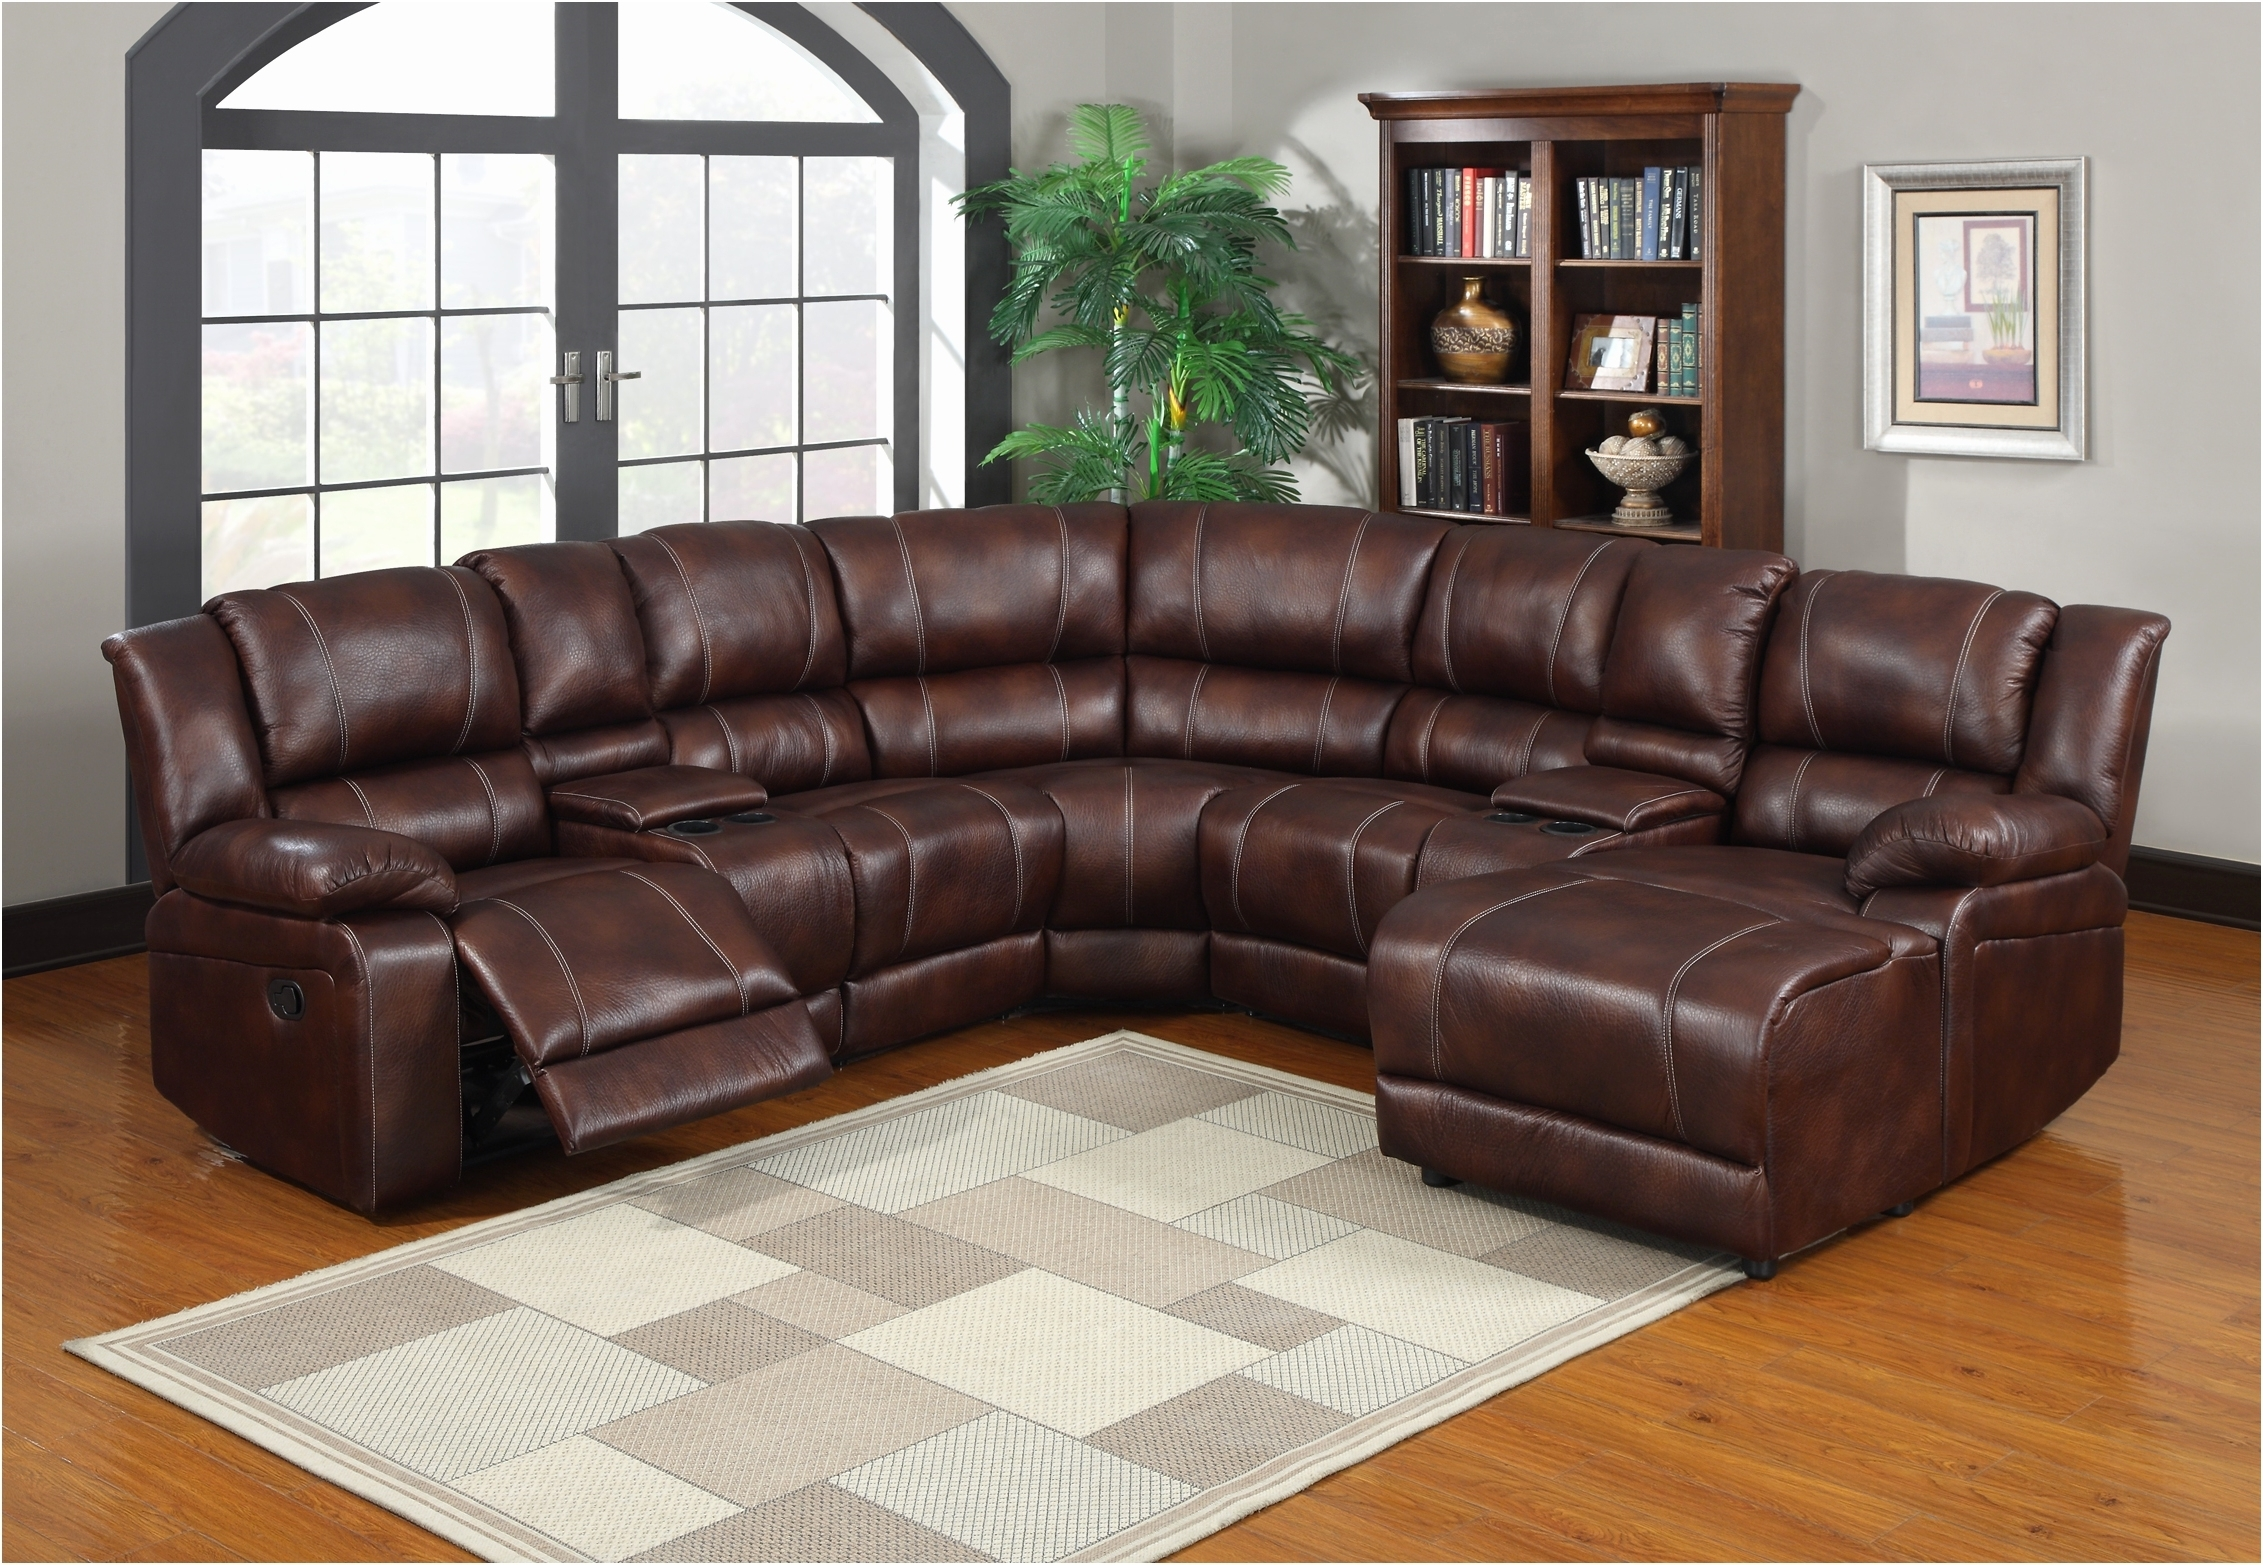 Sectional Sofas With Cup Holders With Regard To Fashionable Sofa : Leather Sectional Sofas With Recliners Fresh Sectional (View 18 of 20)